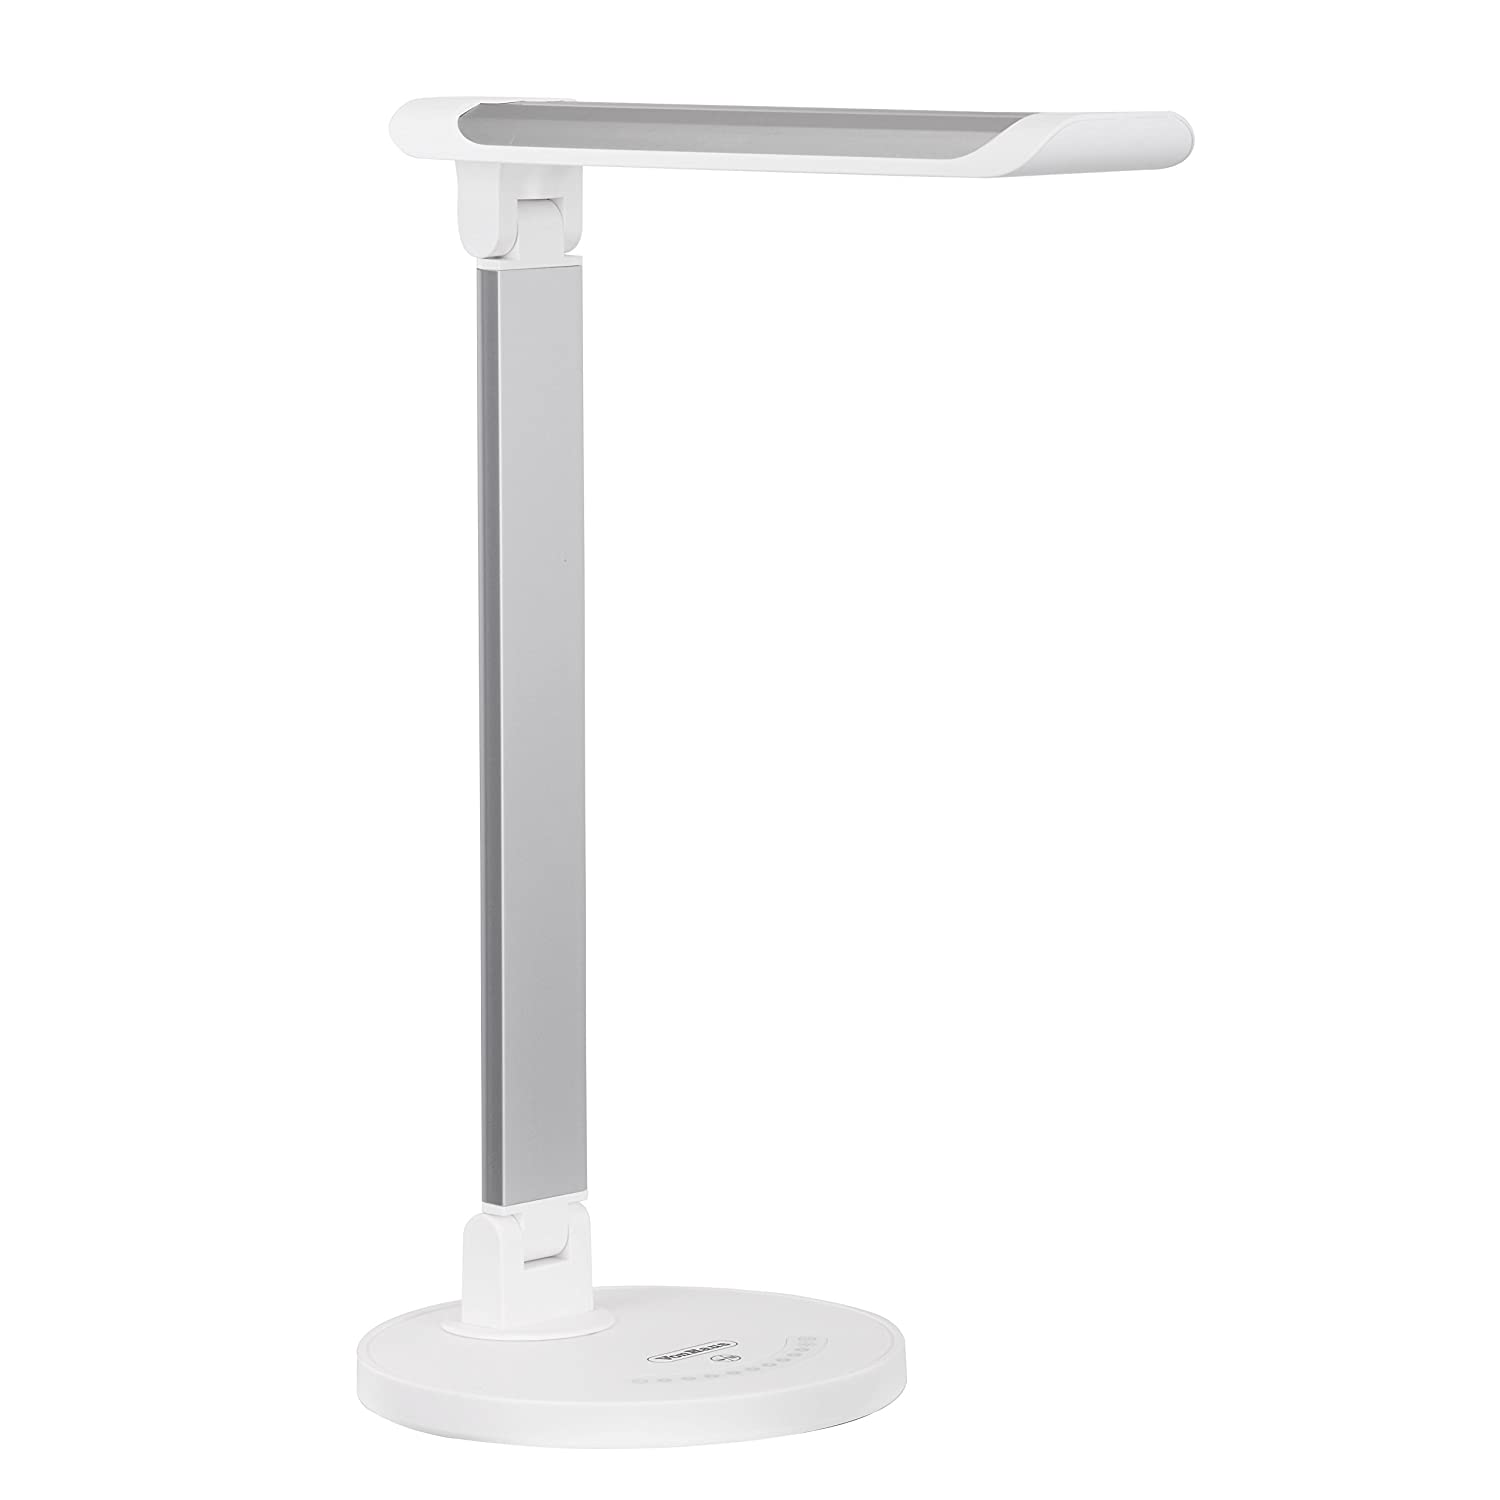 VonHaus LED Desk Lamp, Folding with USB Charger, 7 Level Dimmer, Touch Control and Timer, Aluminum Hobby Lamp, Bedroom, Office or Table Light